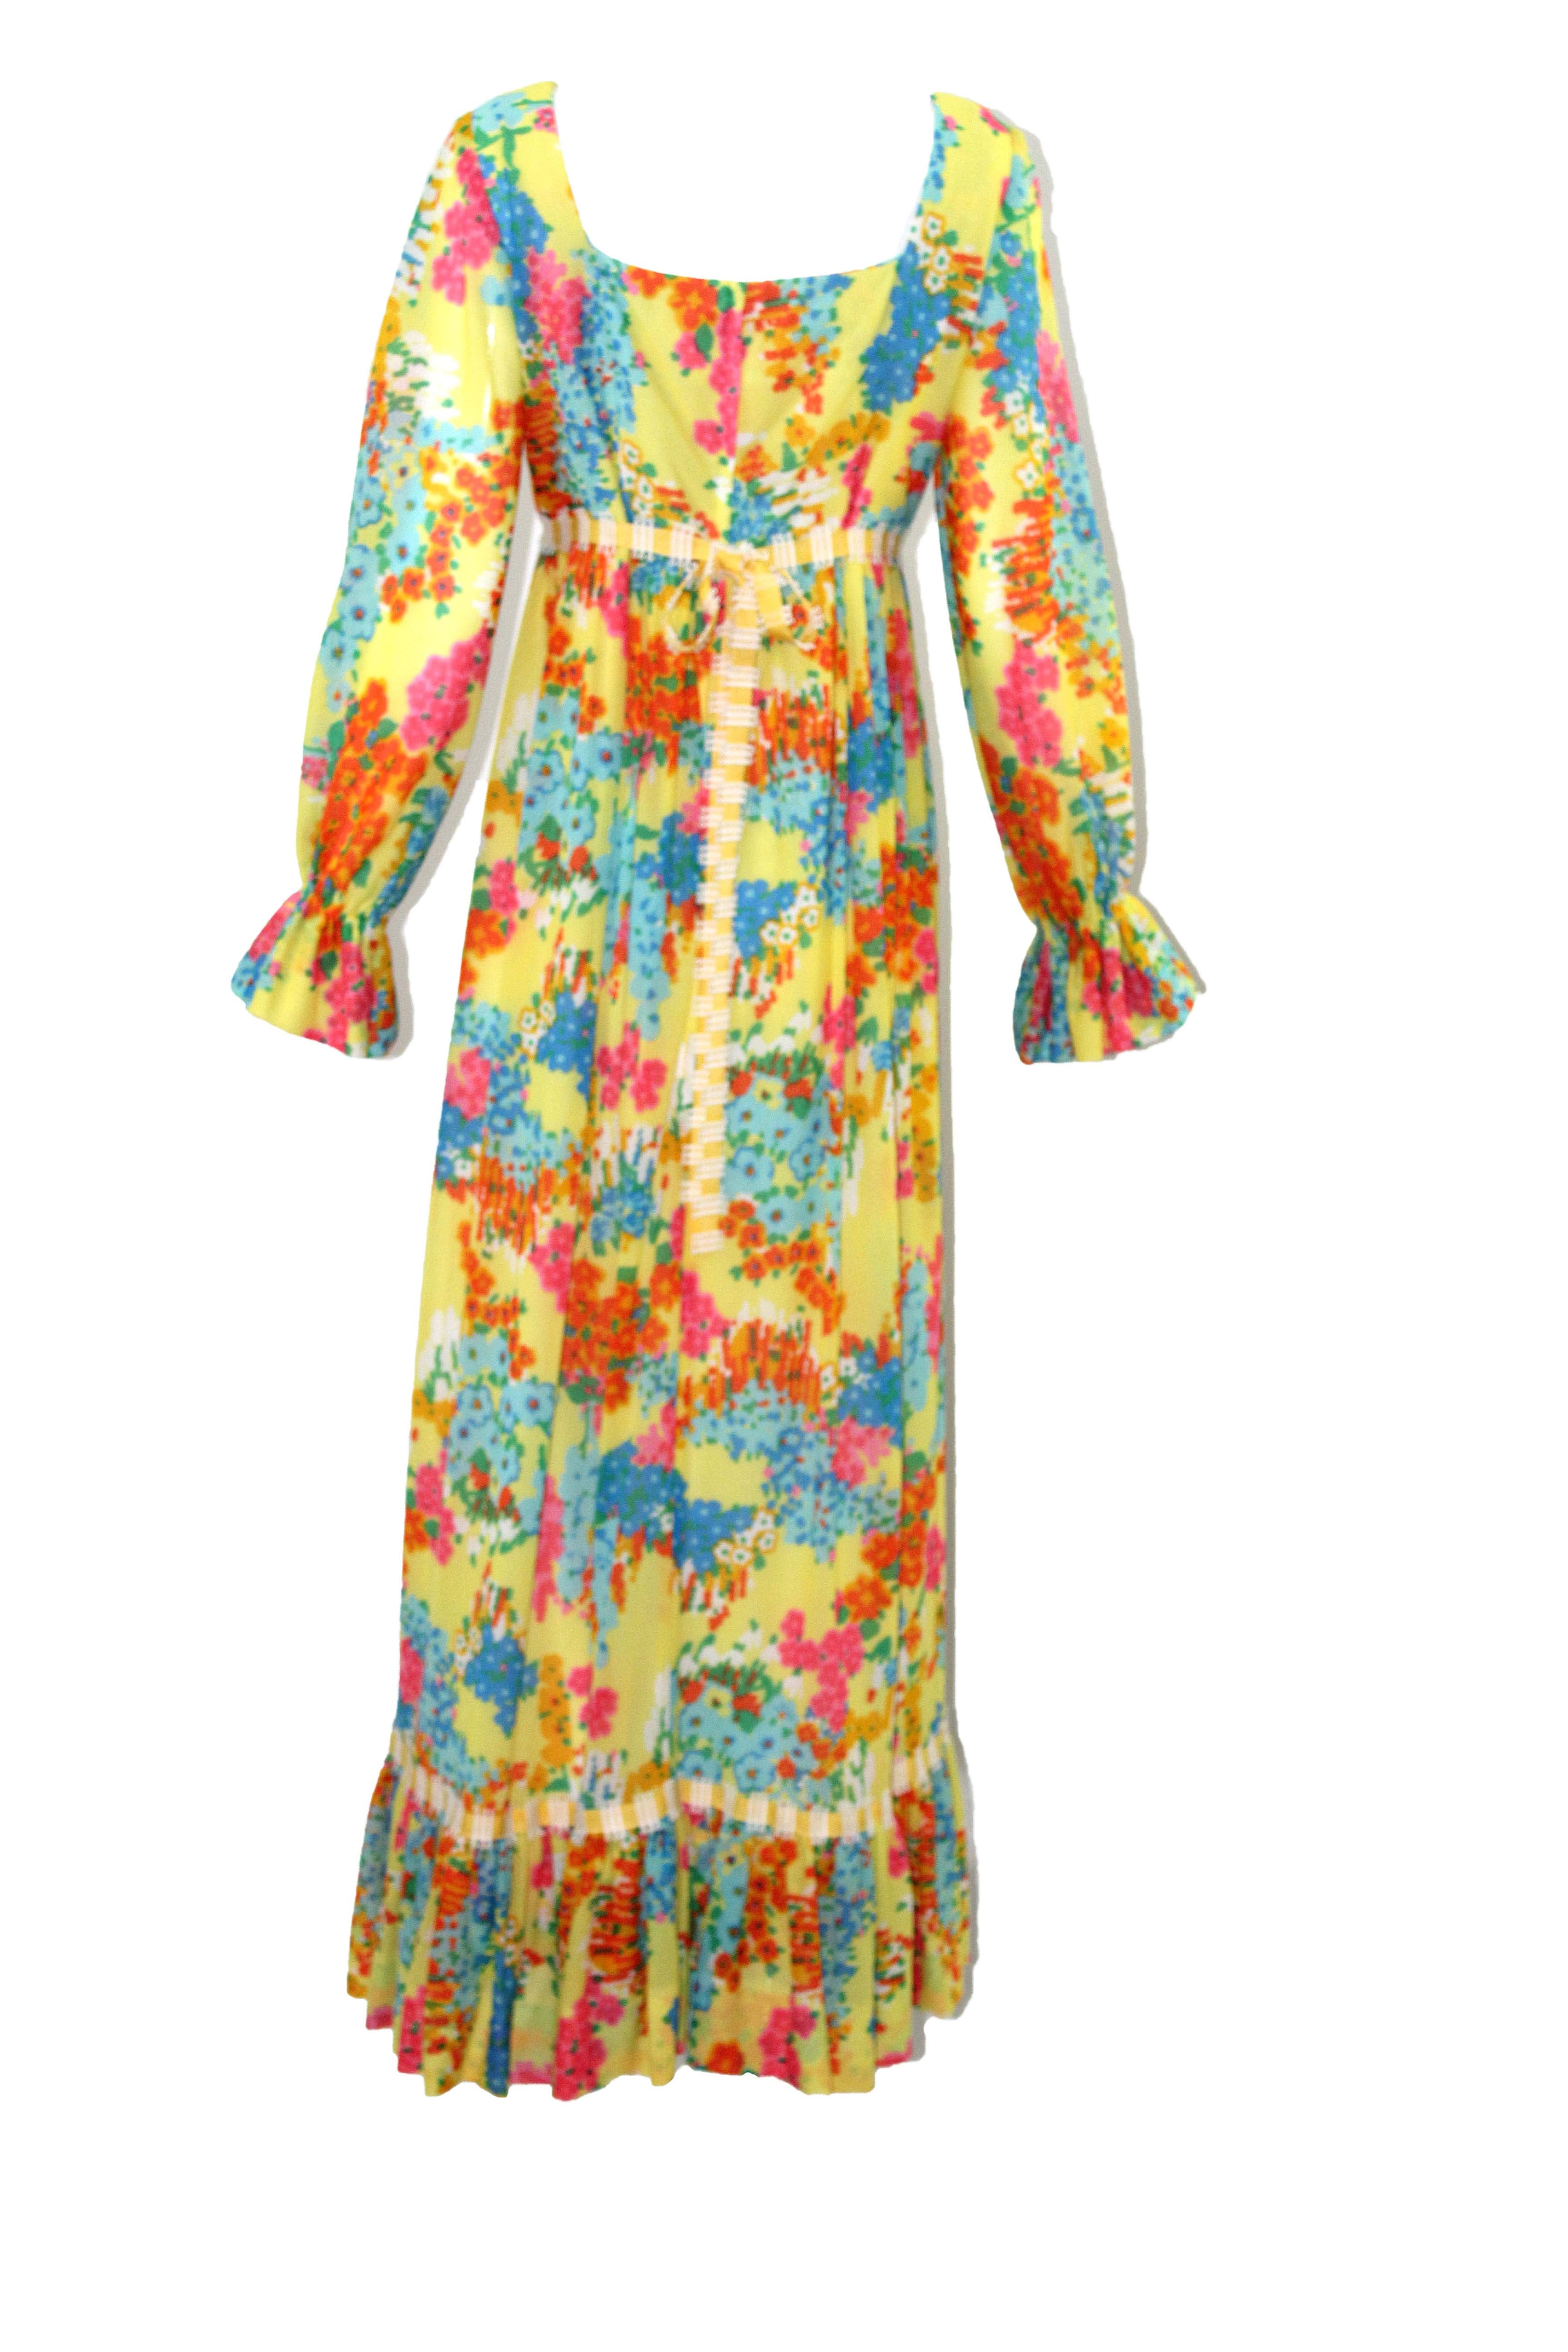 9a474cec1 RARE Lilly Pulitzer Vintage Colorful Boho Maxi Dress Size 12 - The ...